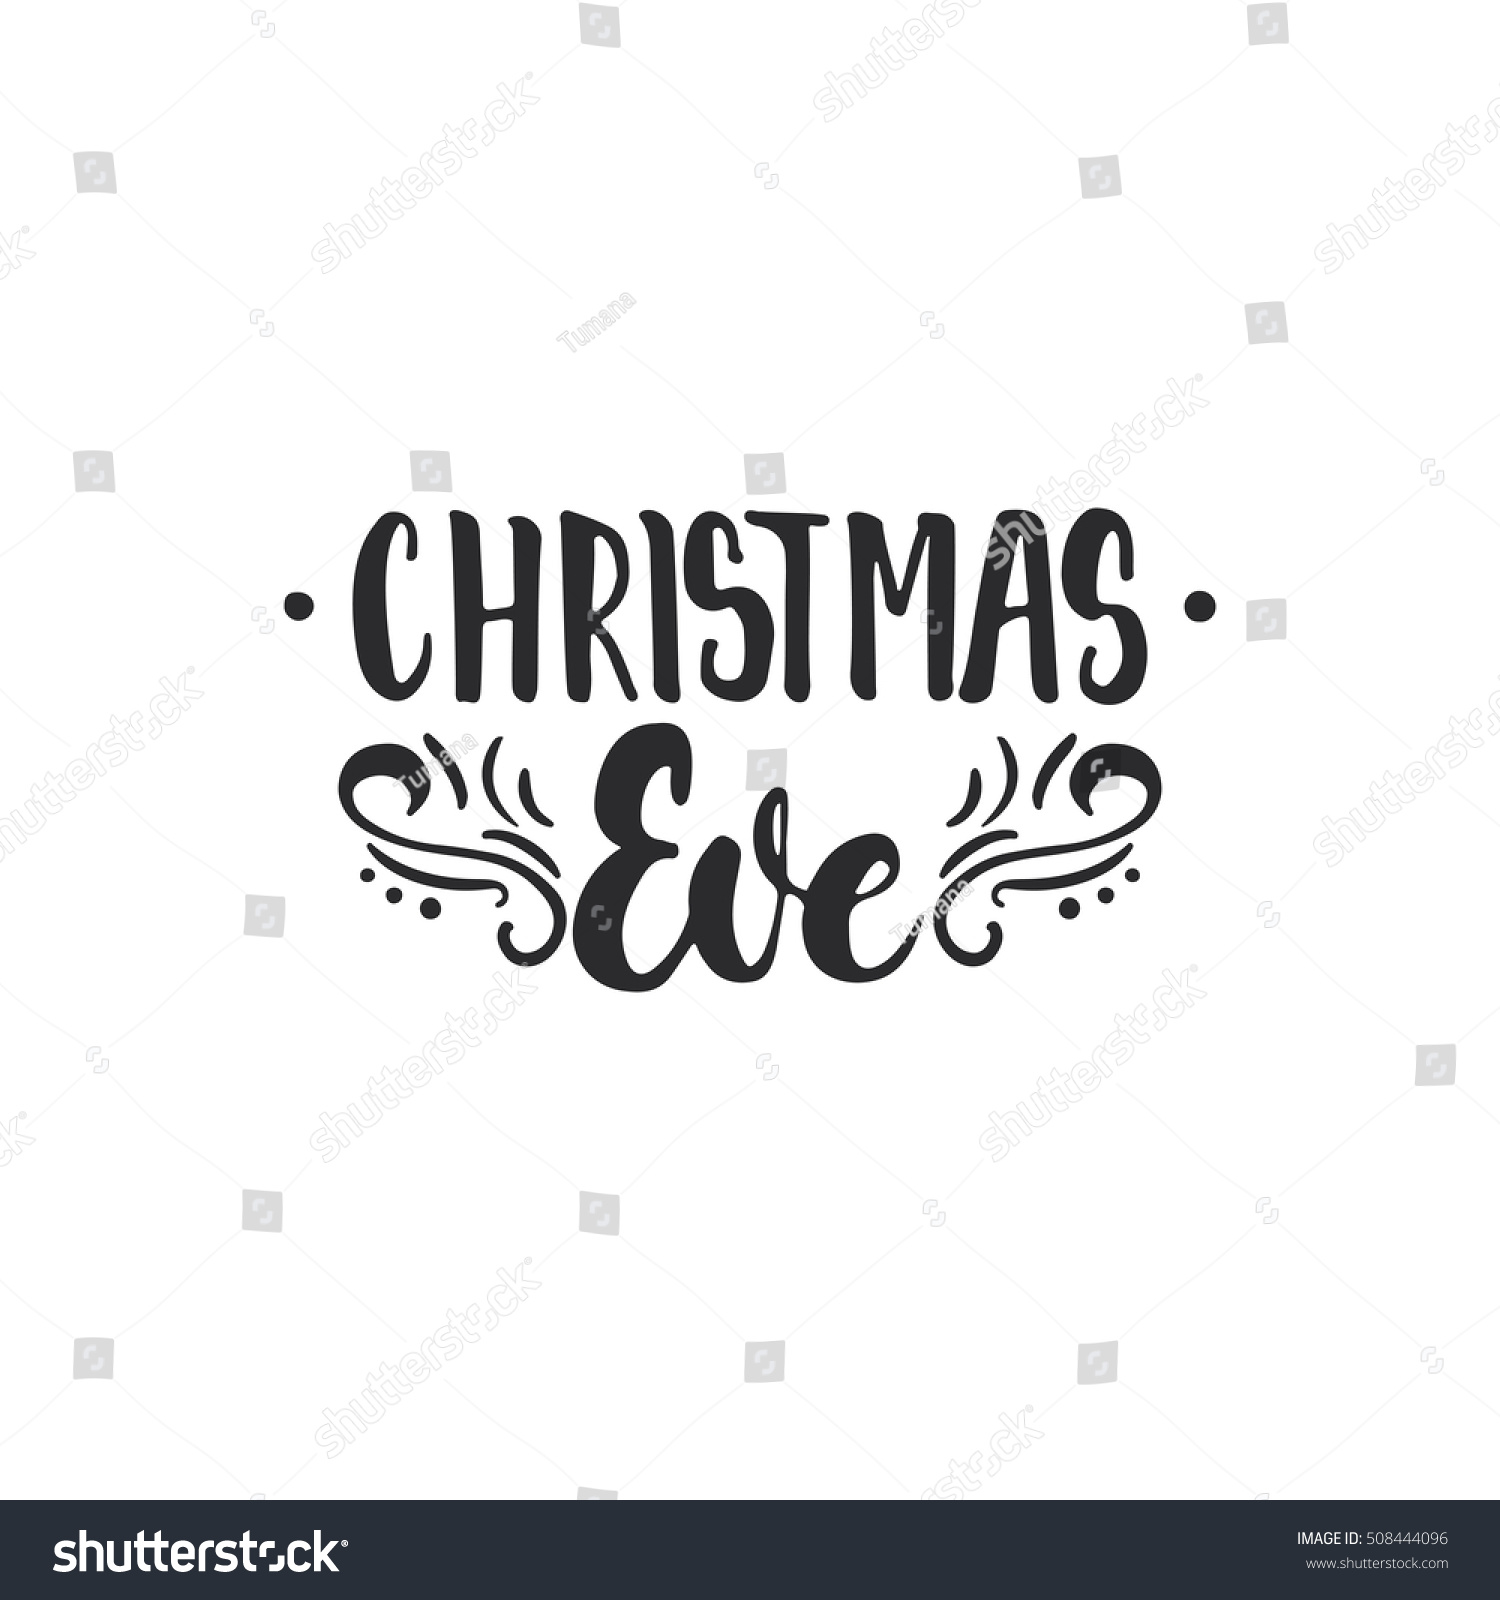 Christmas Eve Lettering Christmas New Year Stock Vector (Royalty ...